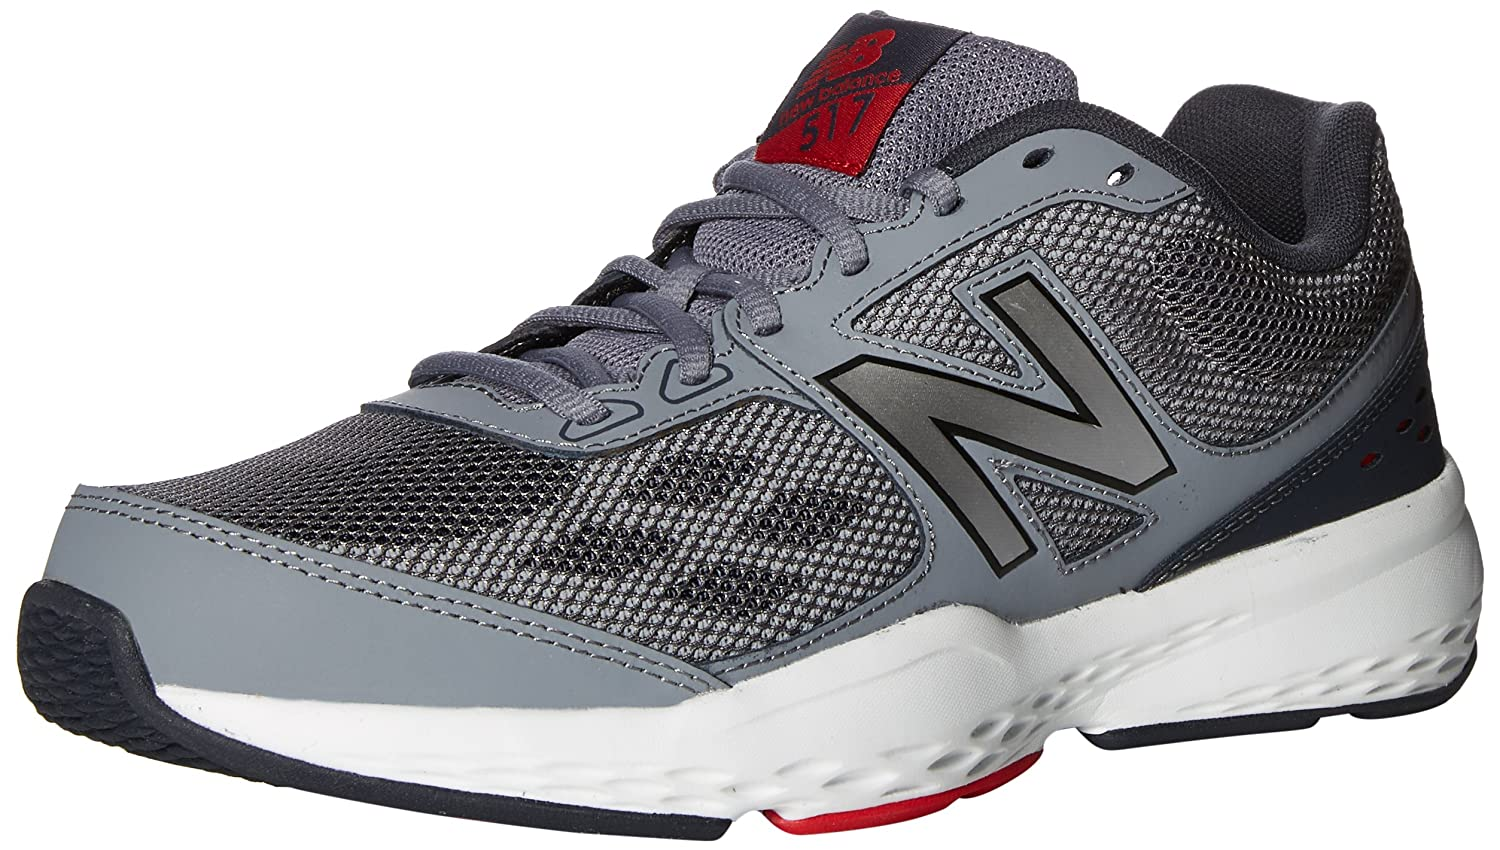 New Balance Men's MX517v1 Cross Trainer